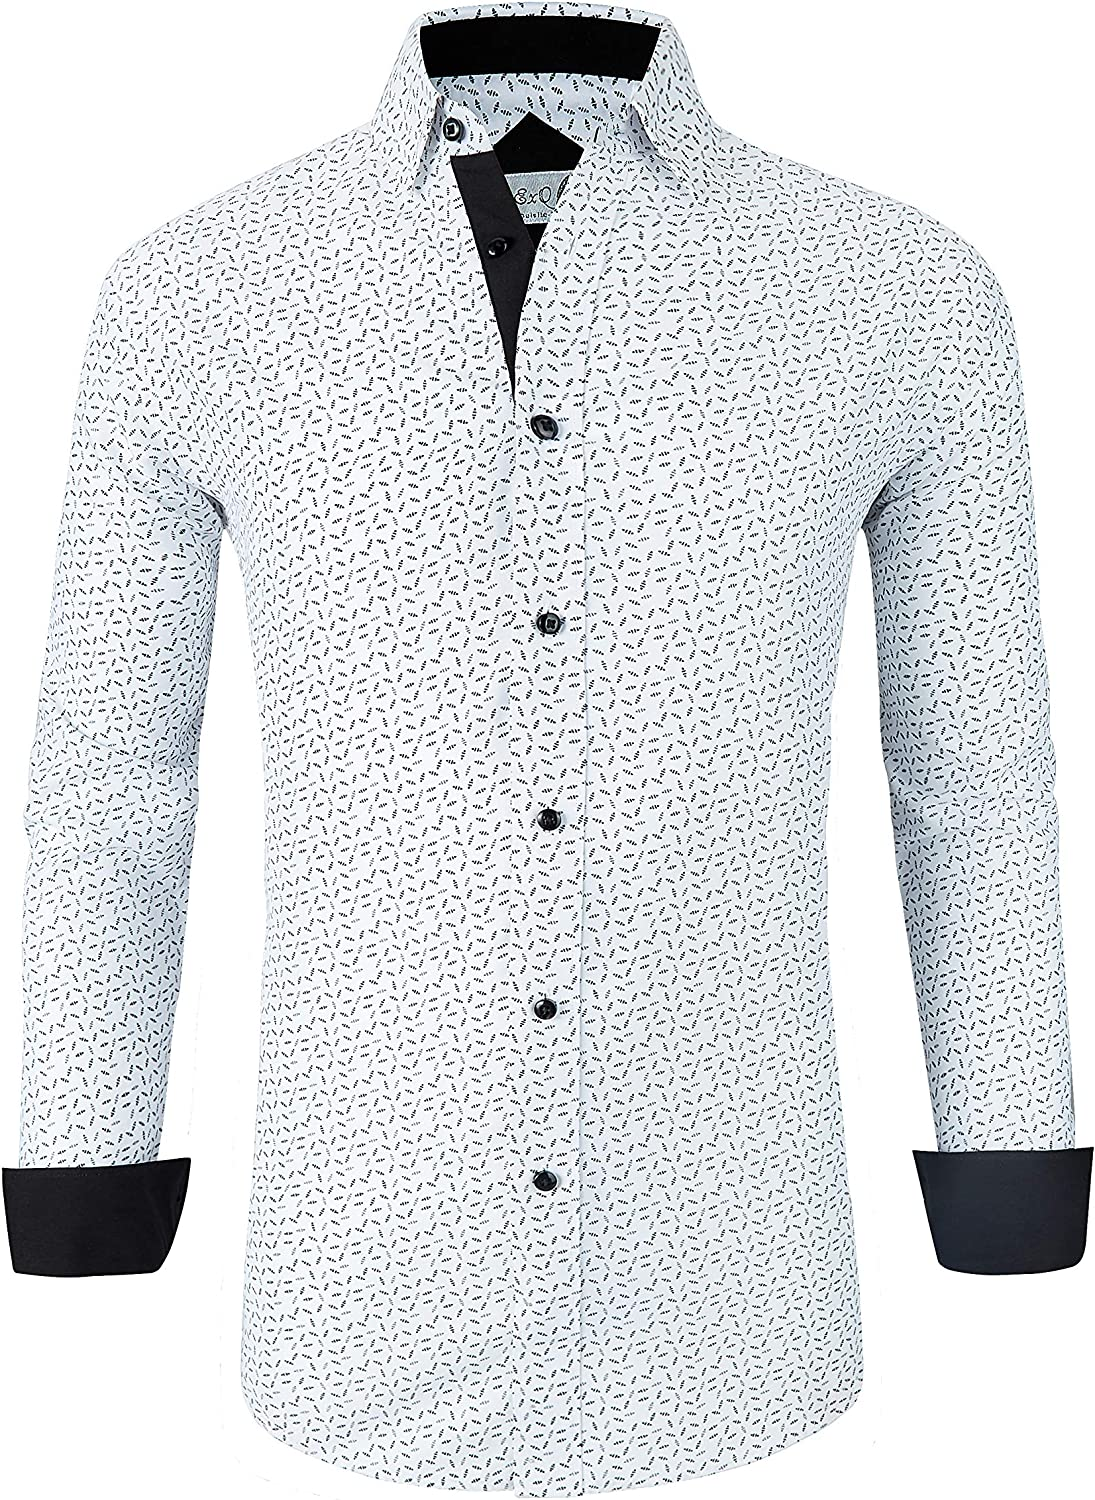 ExQuisite.ZFZ Mens Printed Dress Shirts Wrinkle Free Long Sleeve Regular Fit Casual Button Down Shirt